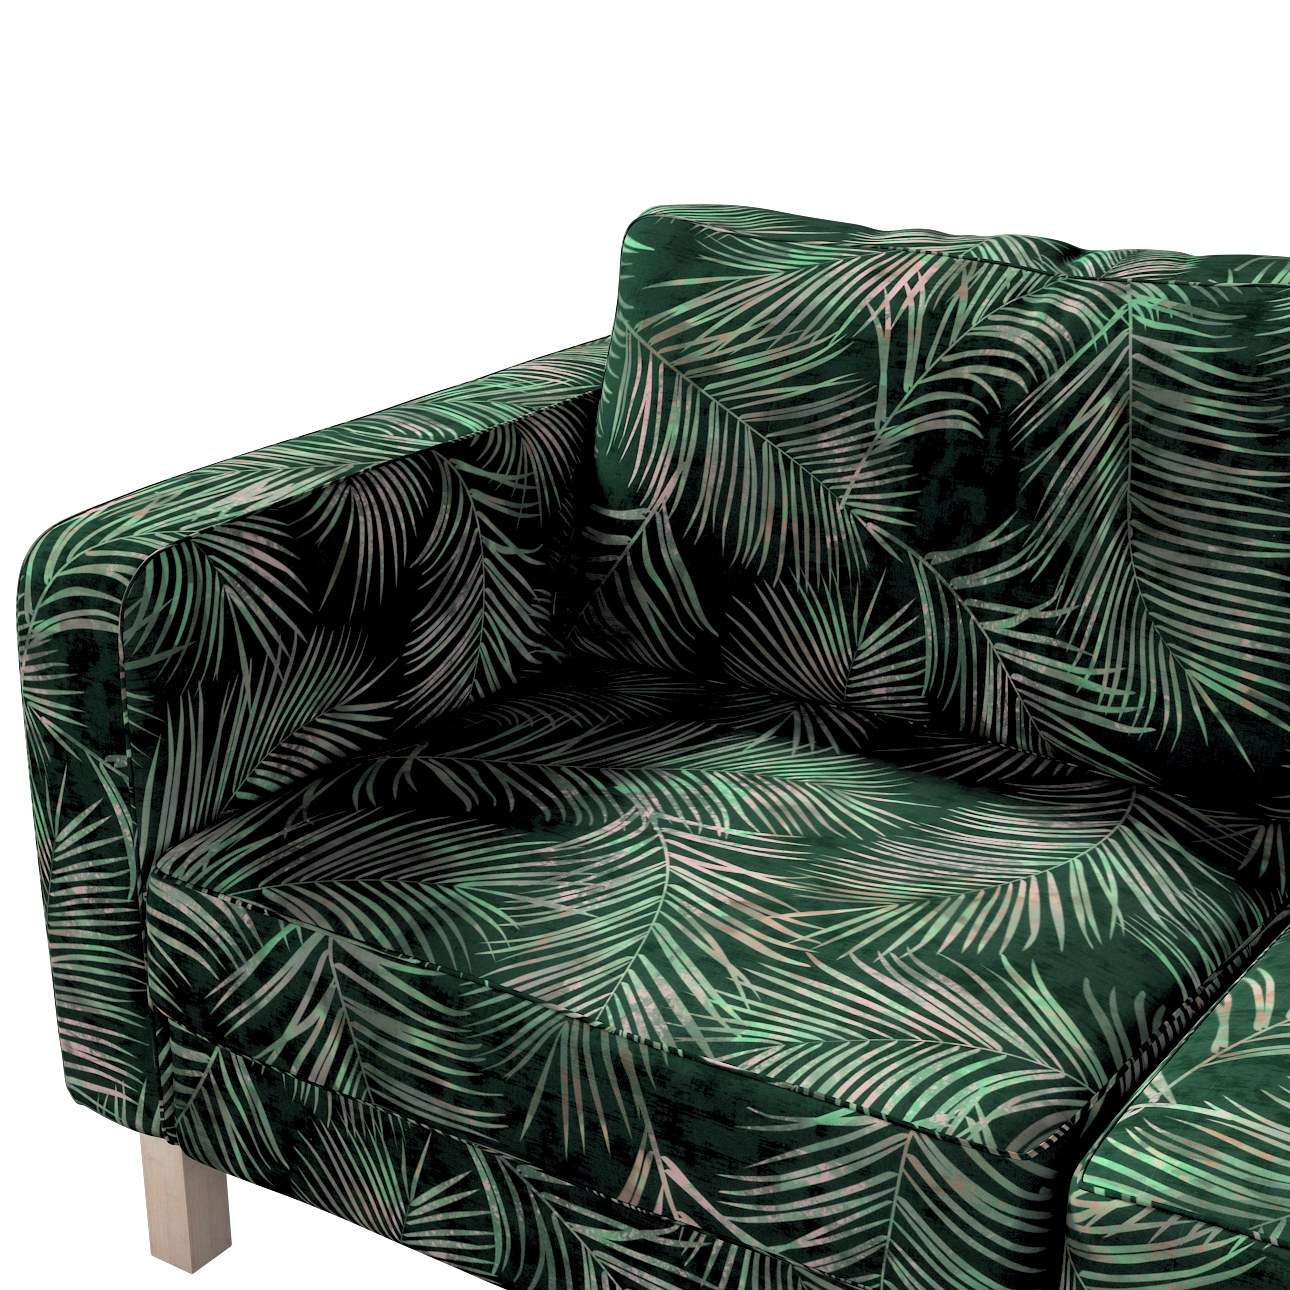 Karlstad 2-seater sofa cover in collection Velvet, fabric: 704-21